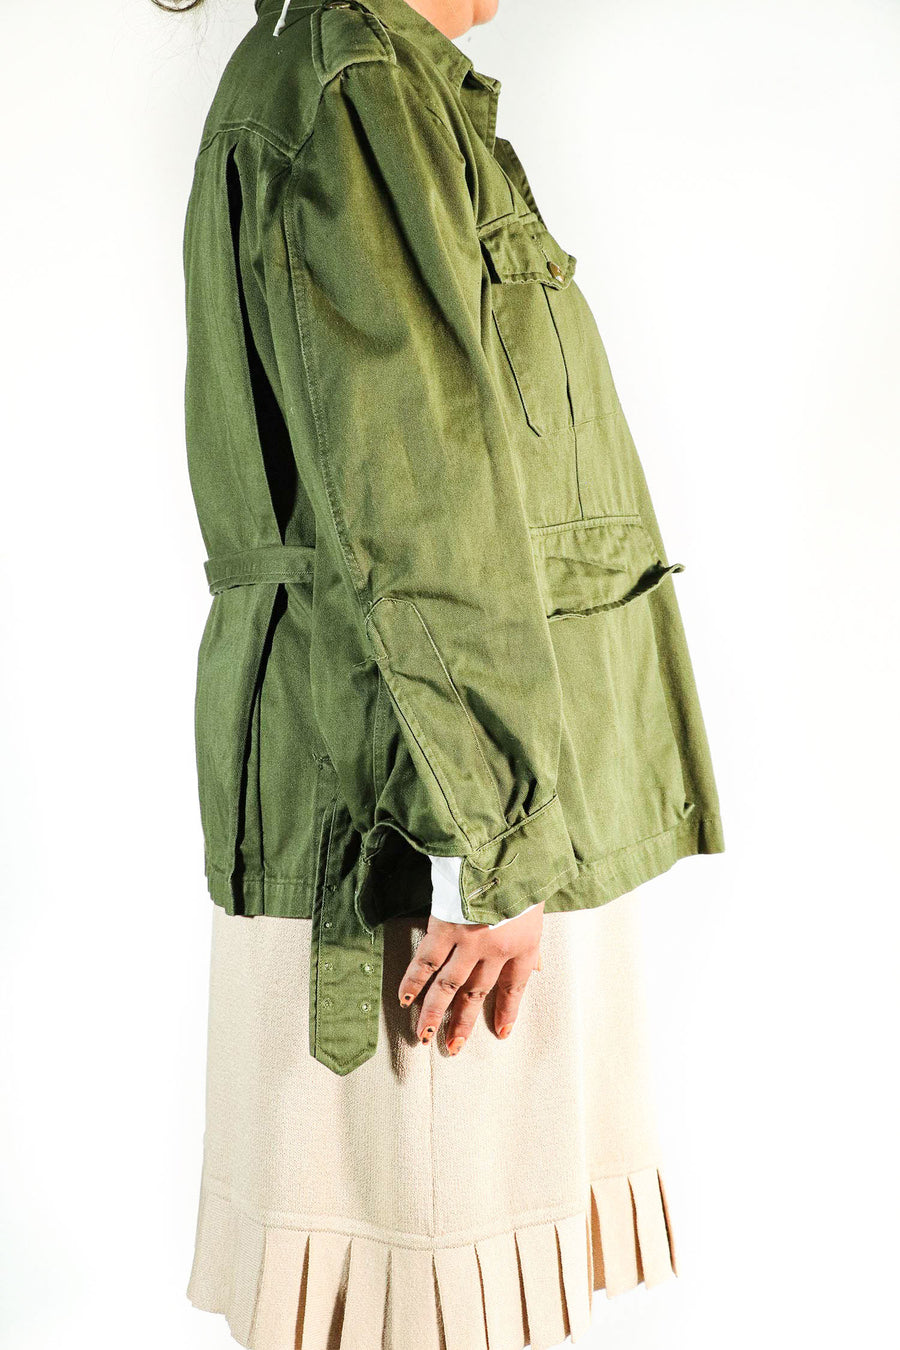 Miller & Gabbe Ltd. - Army Jacket - 6